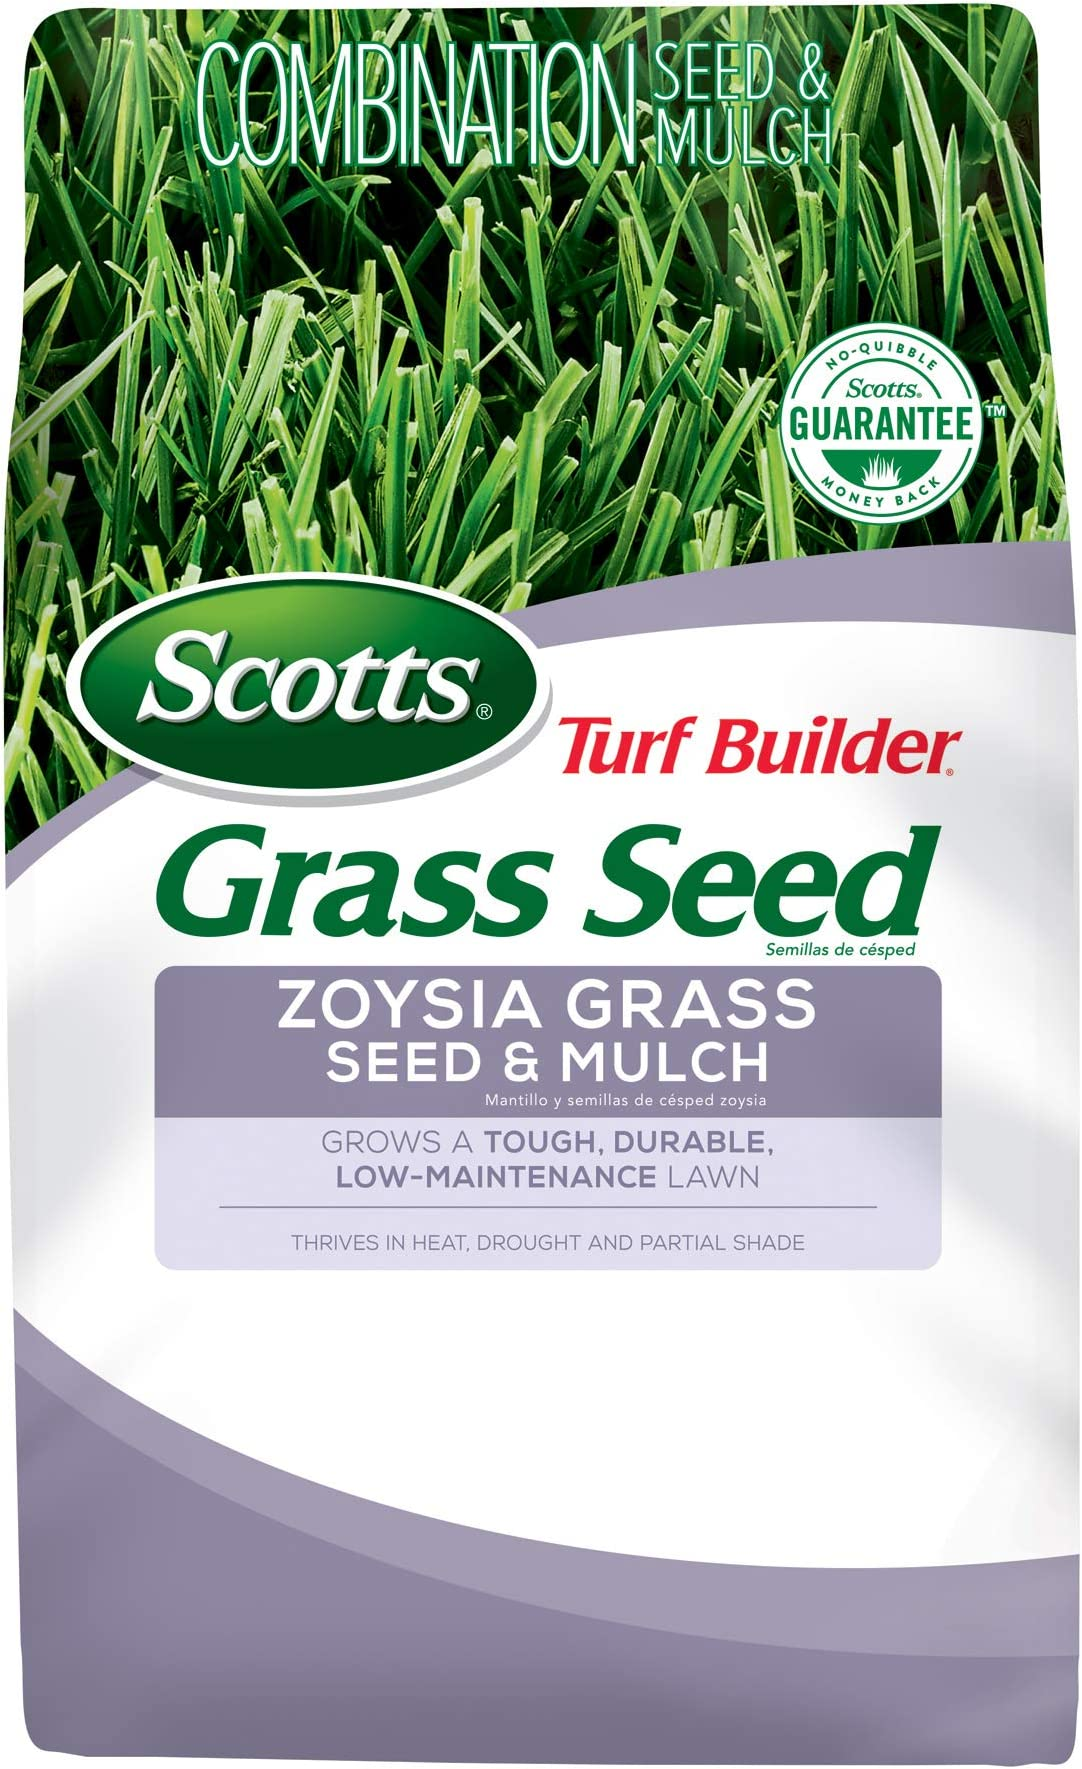 Zoysia Grass: Product Reviews and Ultimate Growing Type